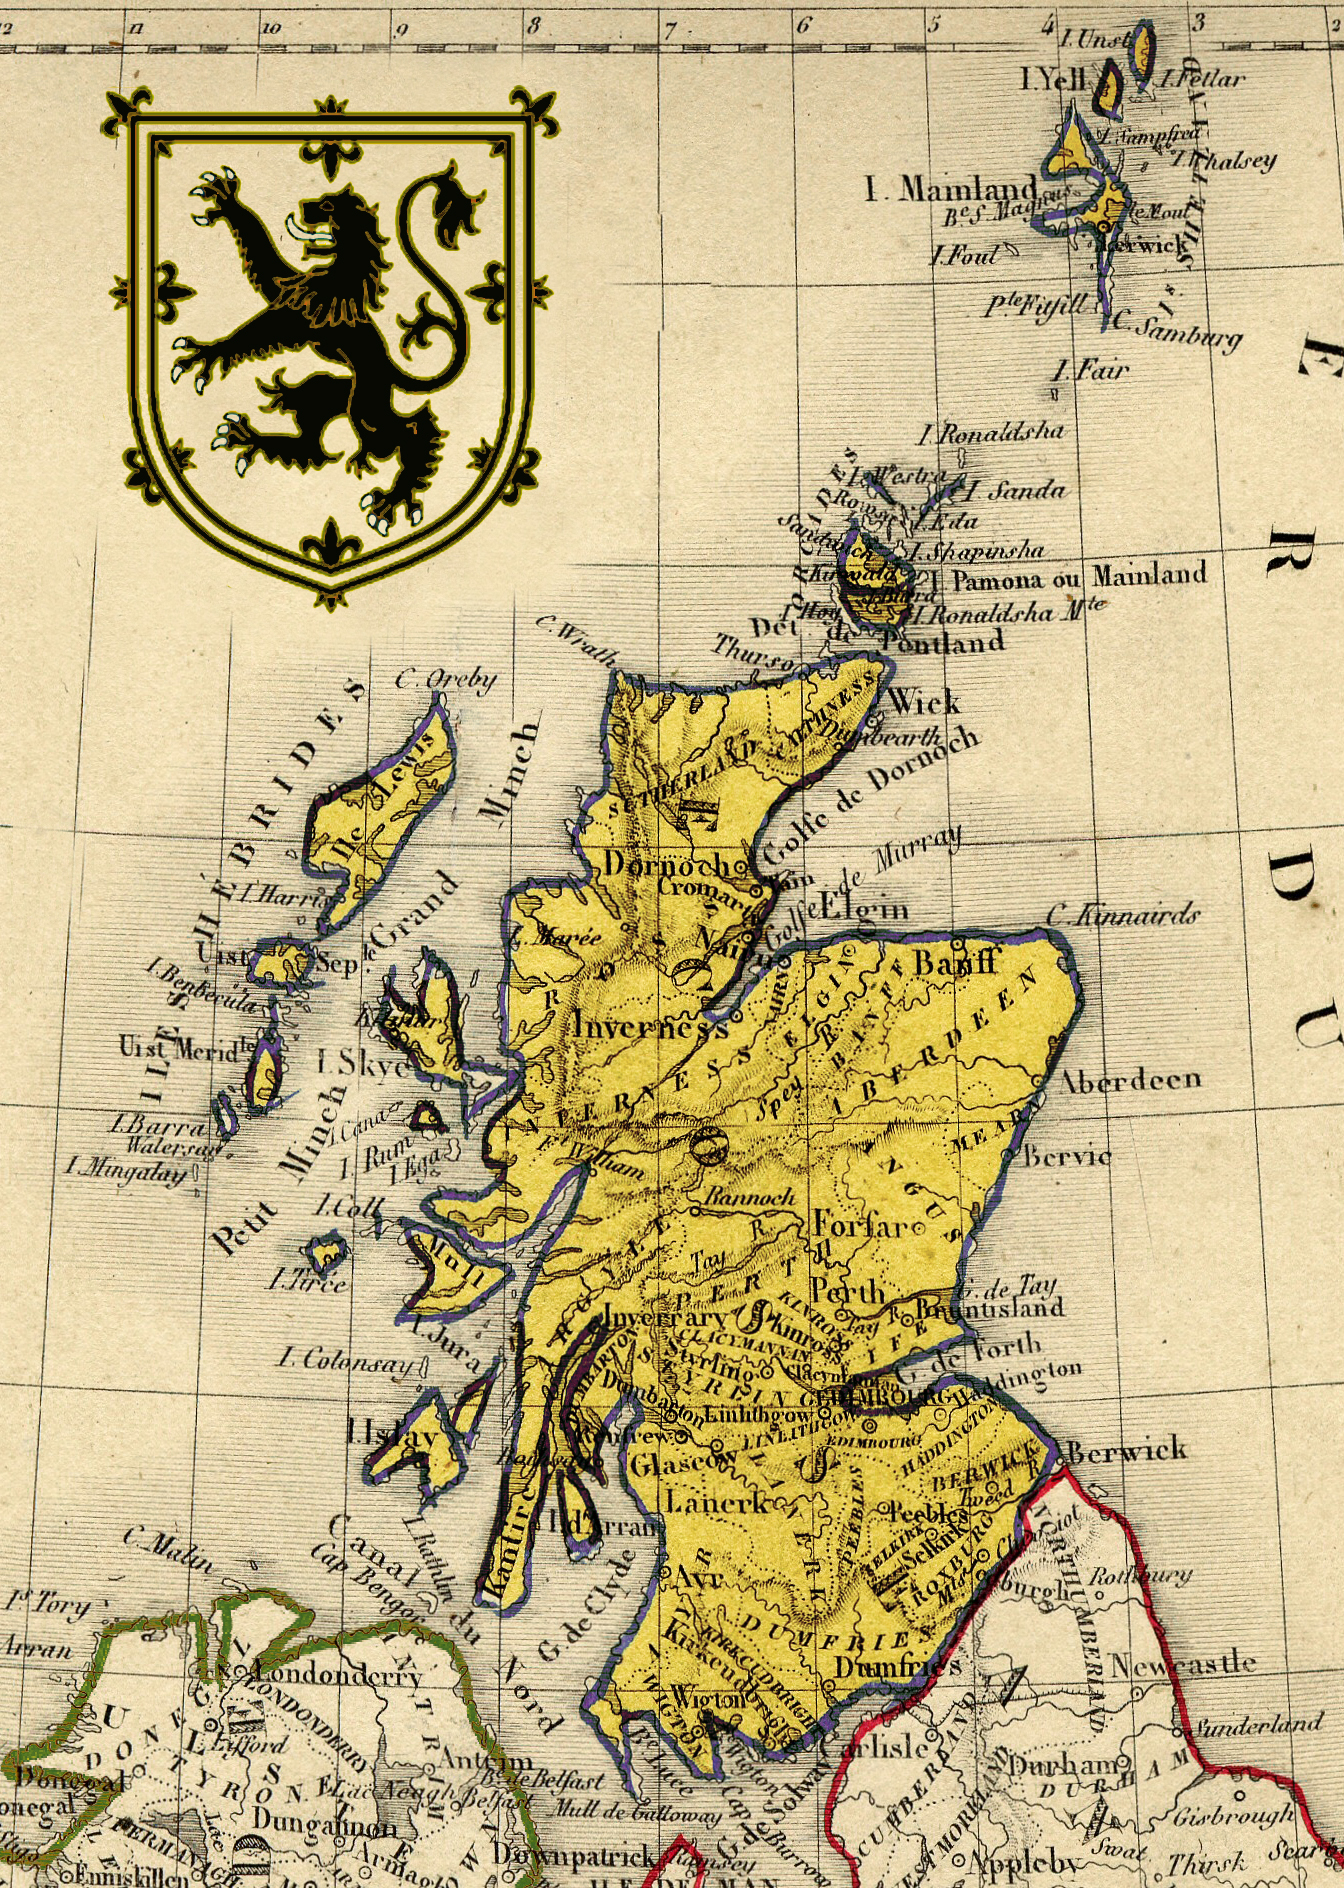 Map of Scotland with the Royal Coat of Arms - by Marie Stockholm